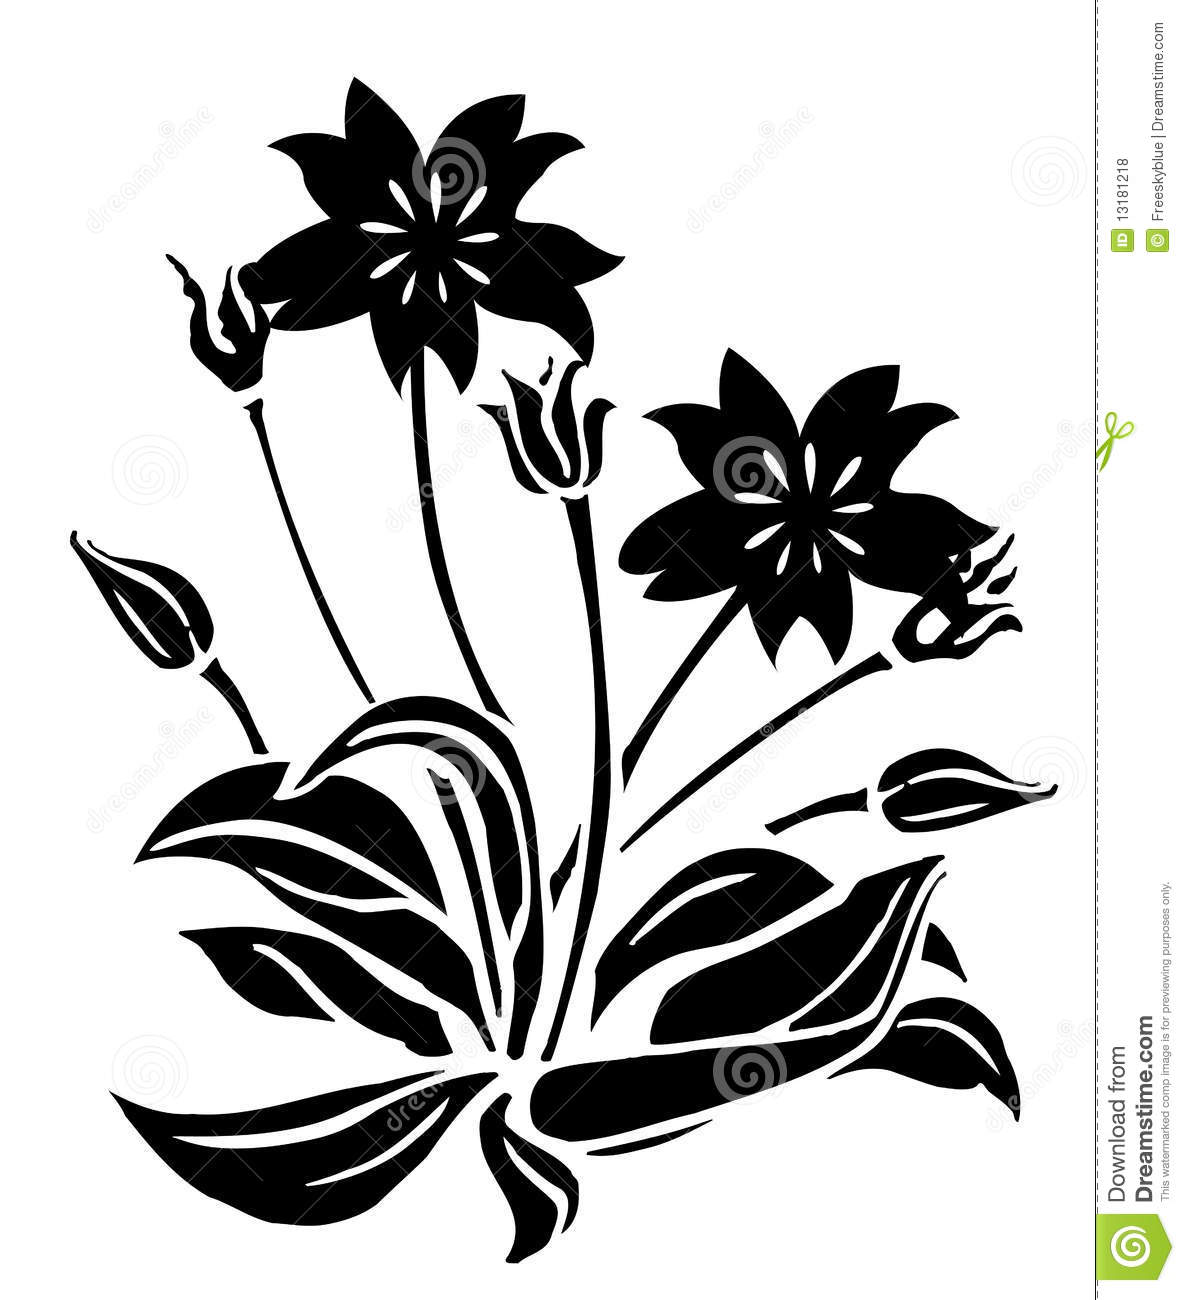 Black Flower And Bud Pattern Royalty Free Stock s Image